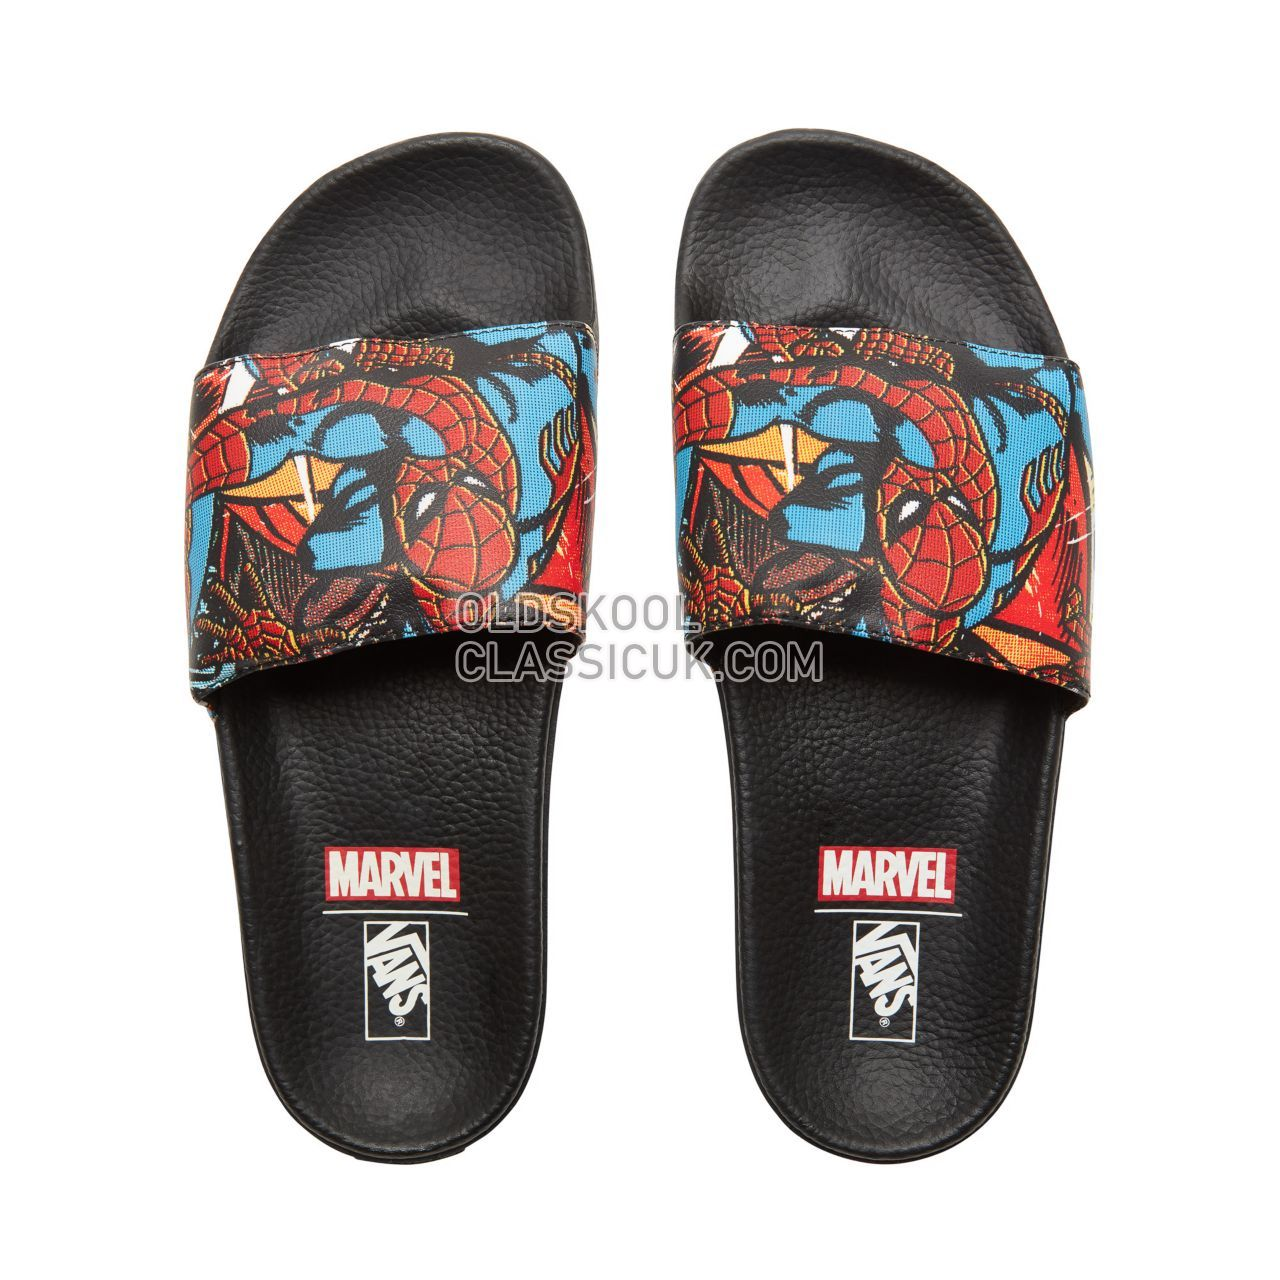 Vans X Marvel Slide-On Sneakers Mens (Marvel) Spider-Man/Black V004KI9H7 Shoes